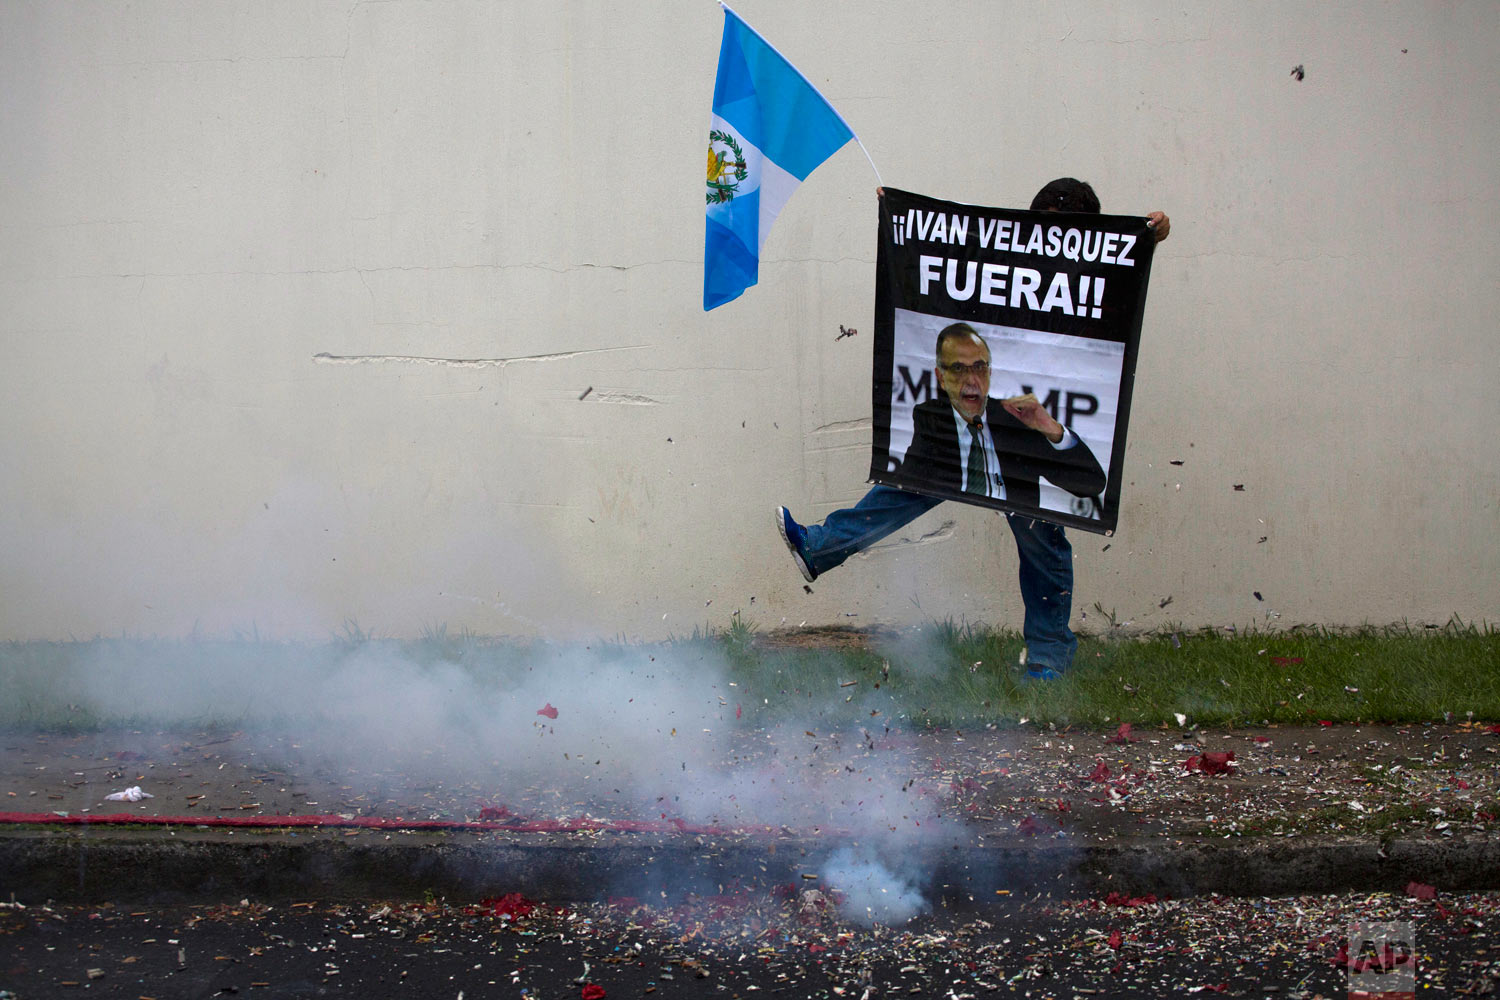 In this Aug. 31, 2018 photo, a supporter of the president's decision to shut down an anti-graft commission protests amid fire crackers outside the U.N. International Commission Against Impunity (CICIG) office in Guatemala City. The government reiterated in Sept. it is refusing to readmit Ivan Velasquez, head of a U.N. commission investigating corruption. (AP Photo/Moises Castillo)